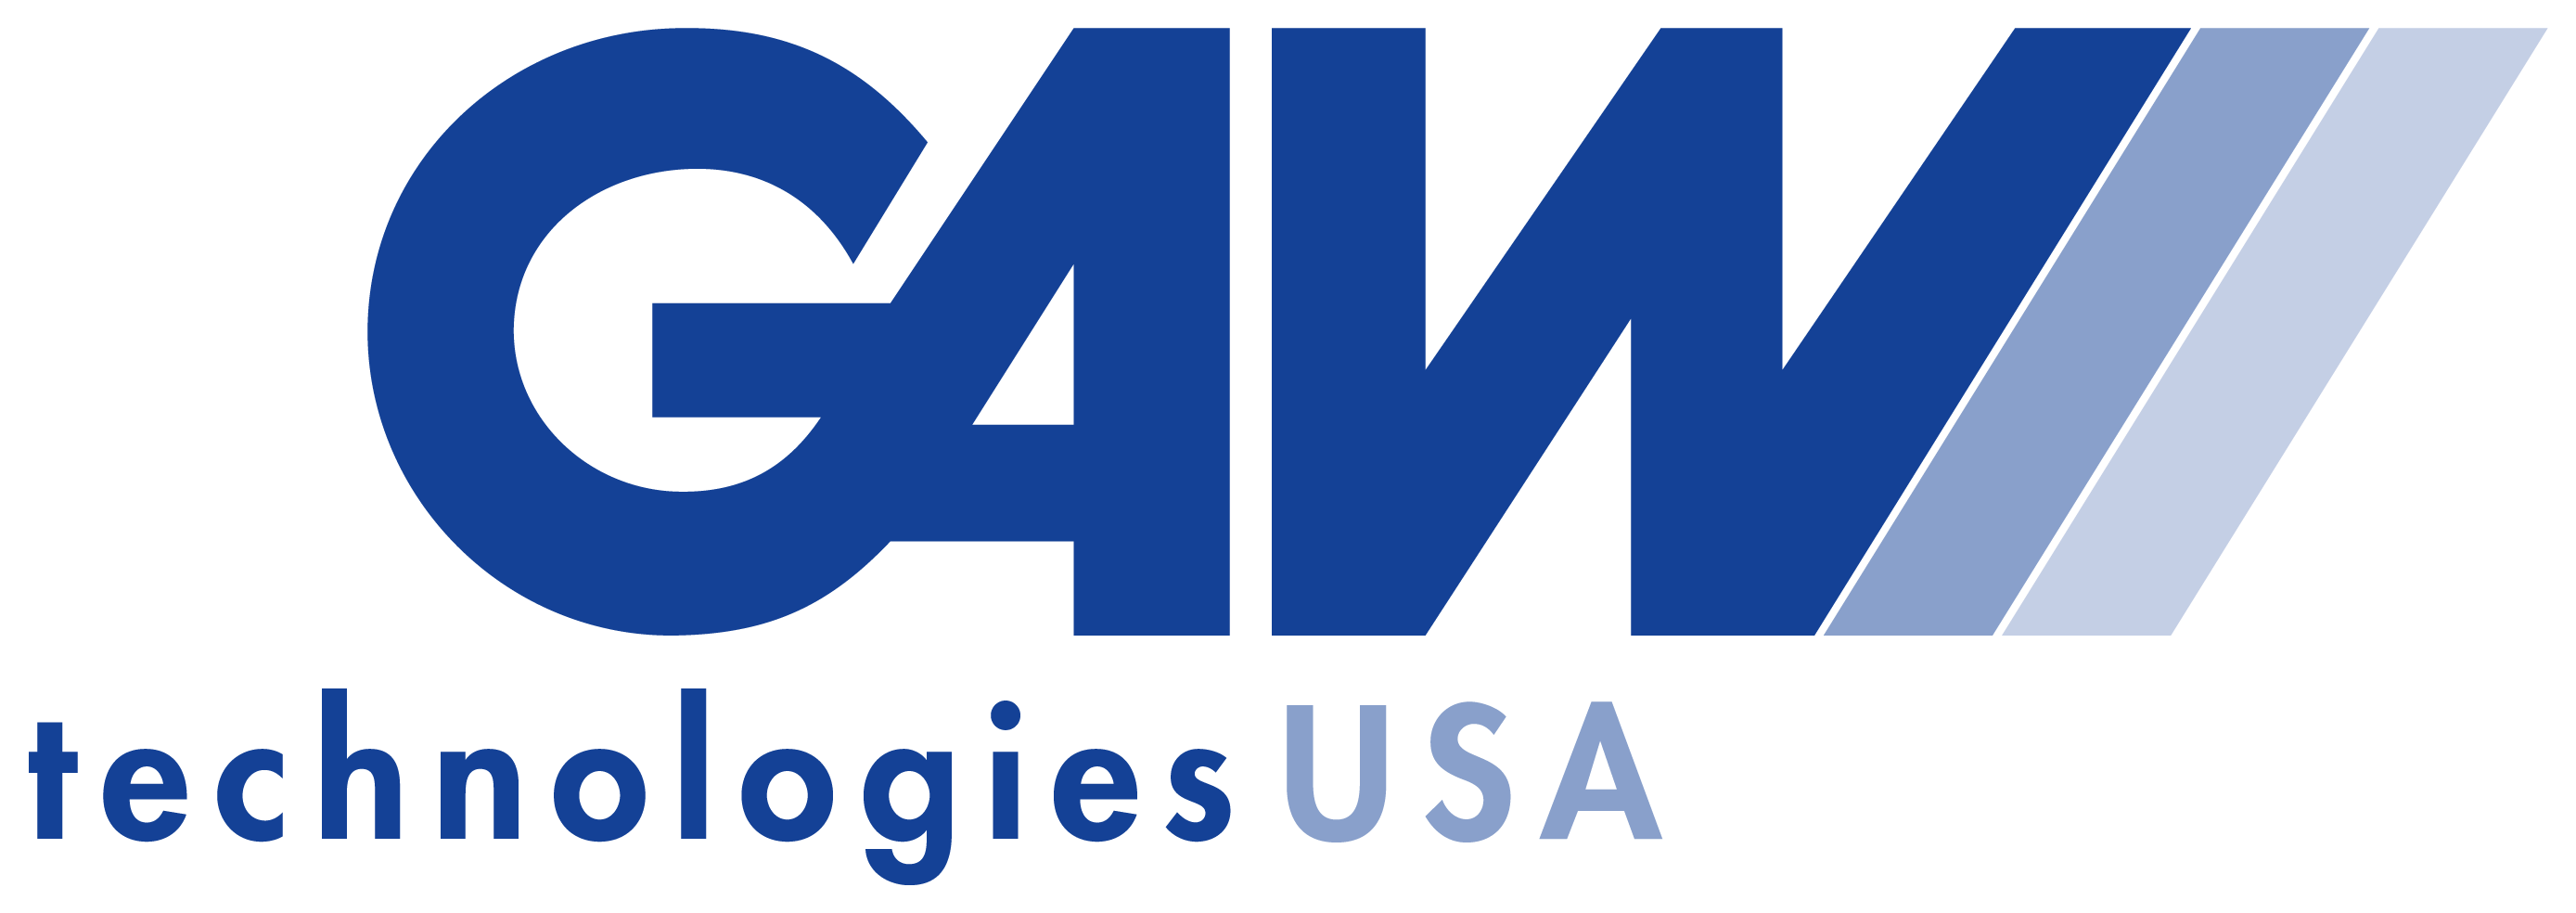 GAW Group technologies subsidiary USA Logo RGB USA